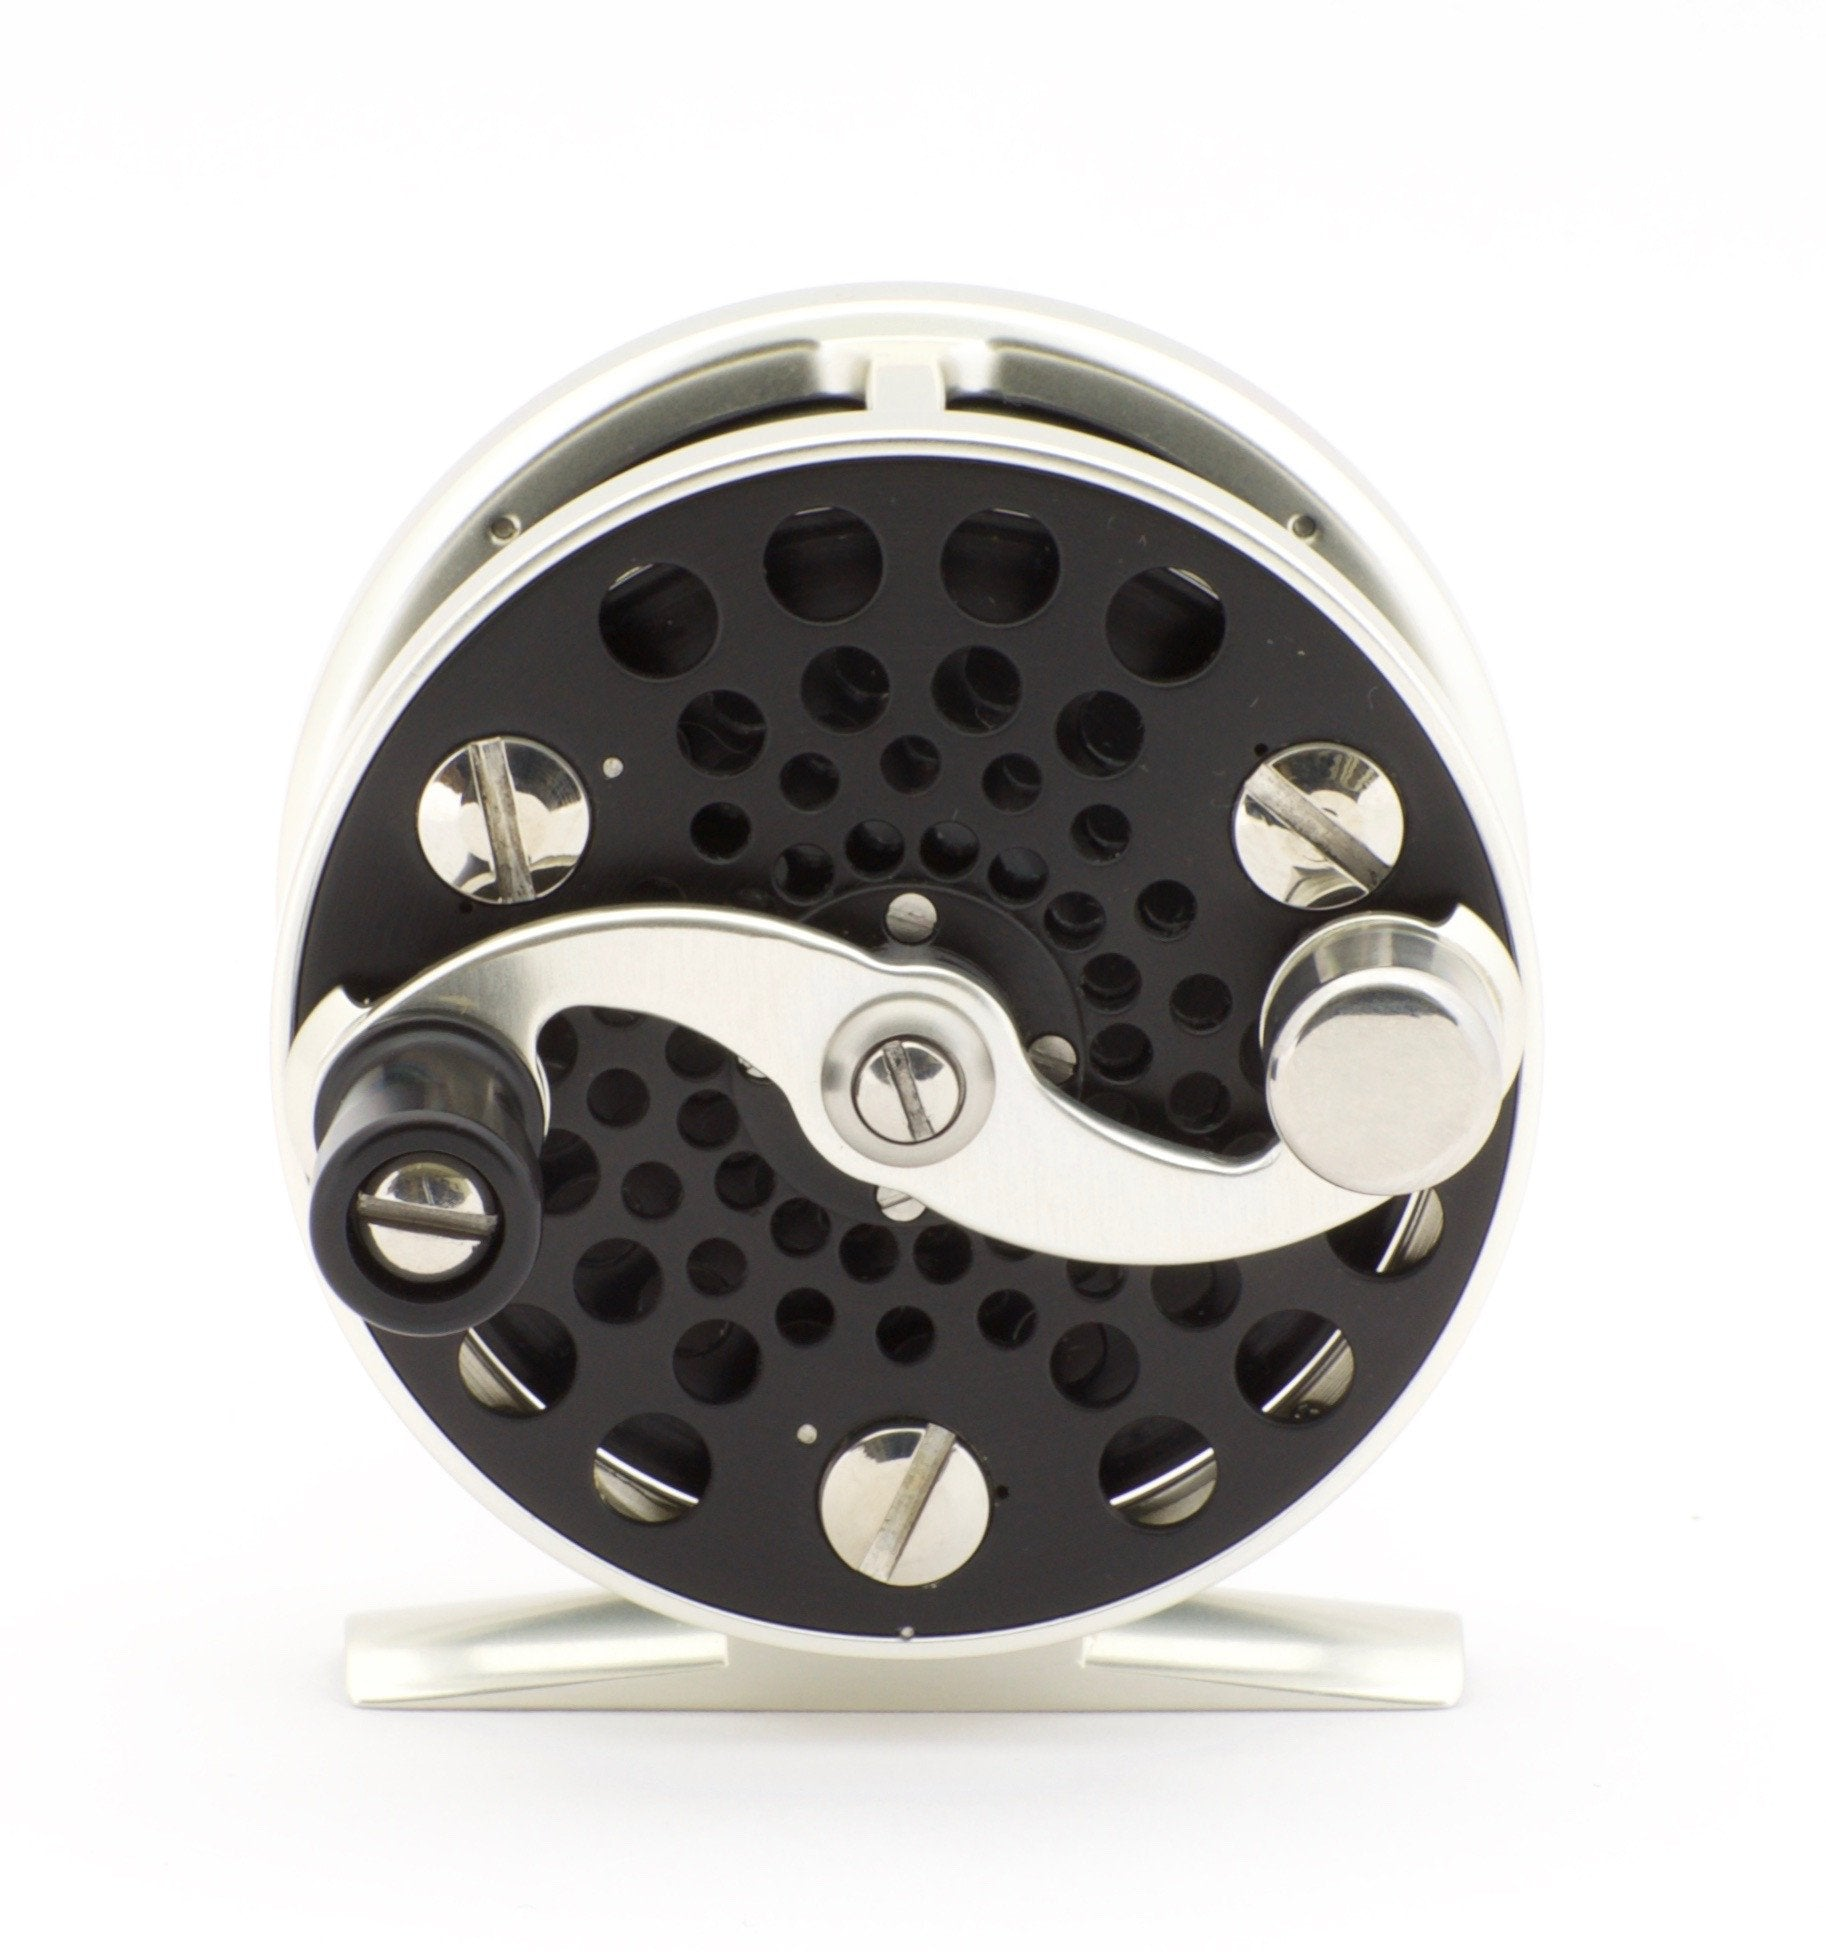 "Robichaud 2 5/8"" Limited Edition Trout Reel"